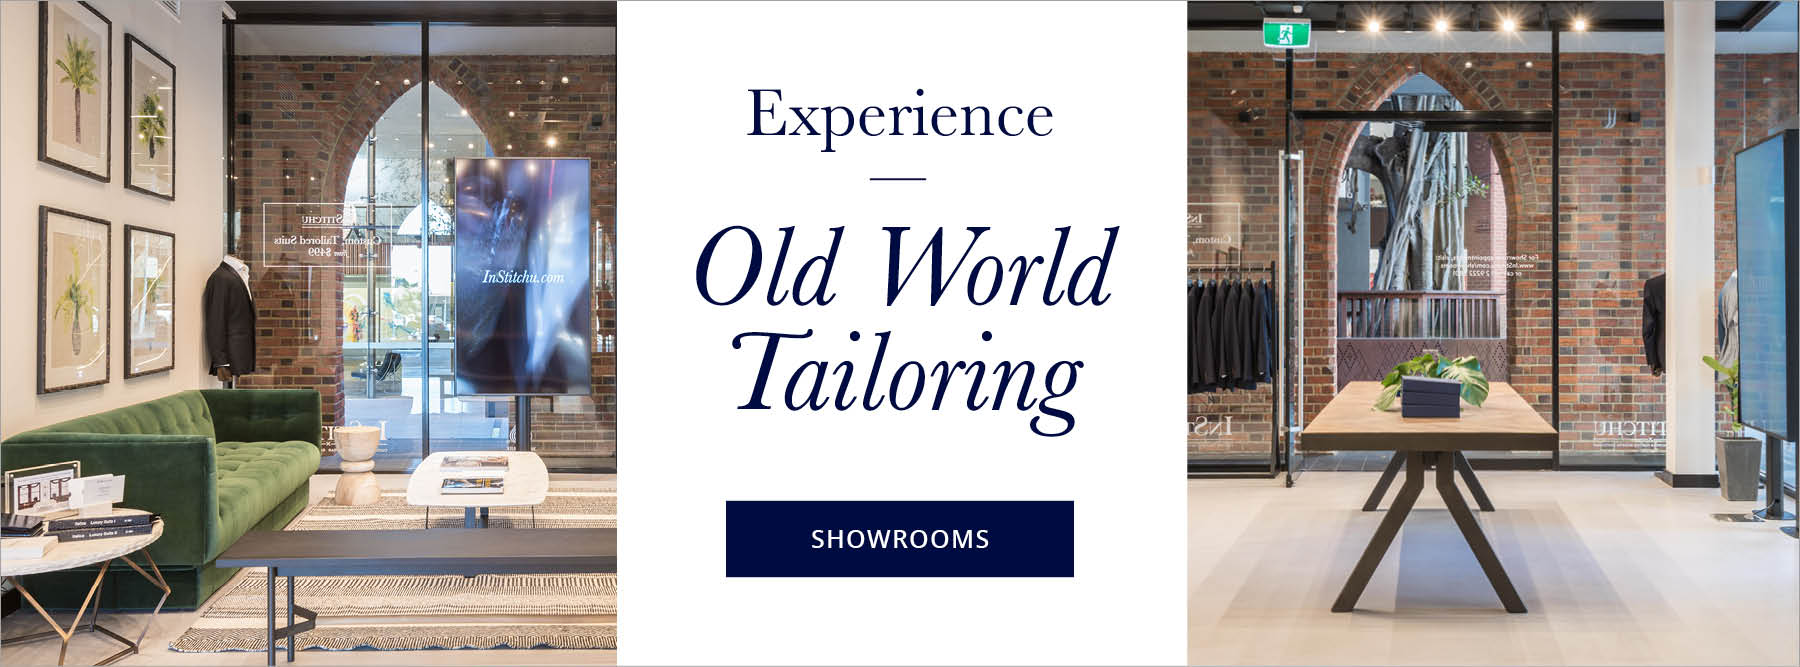 Experience Old World Tailoring